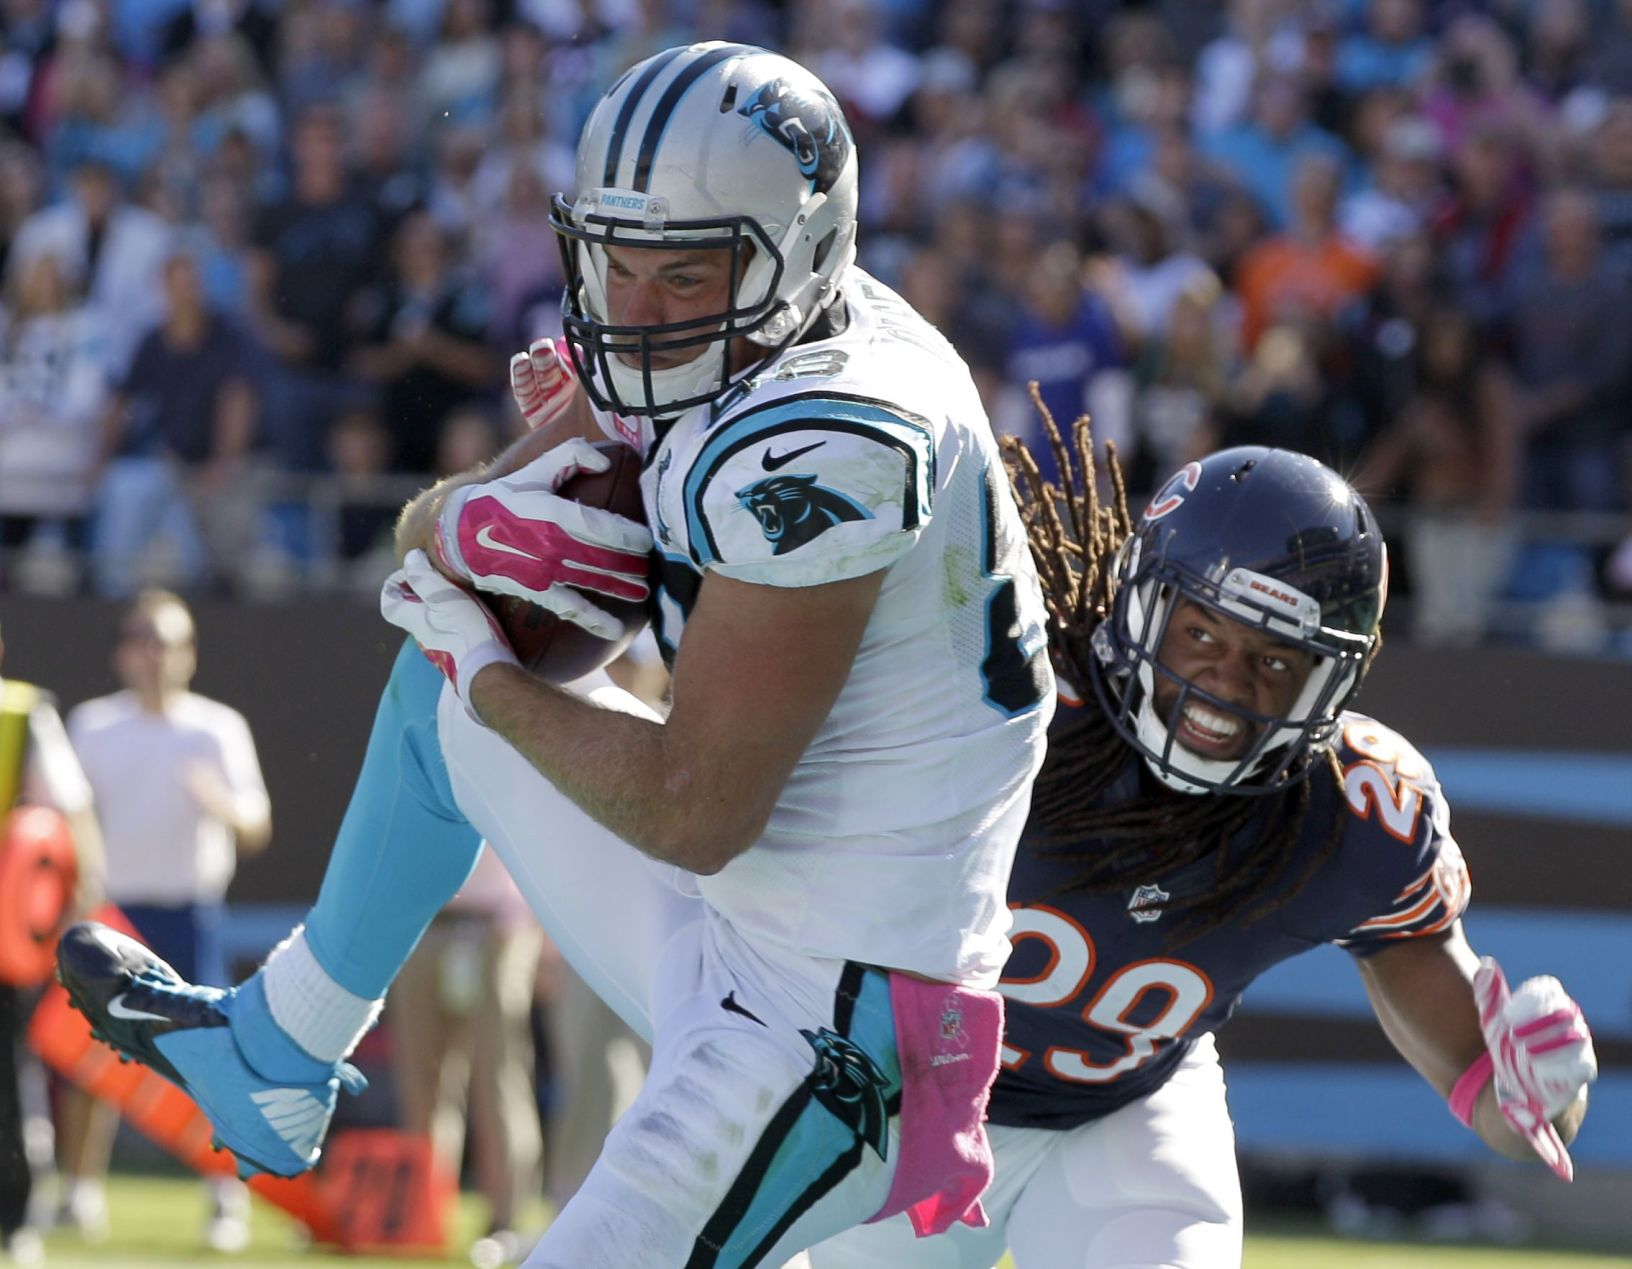 Panthers TE Greg Olsen will not play against Saints Sunday